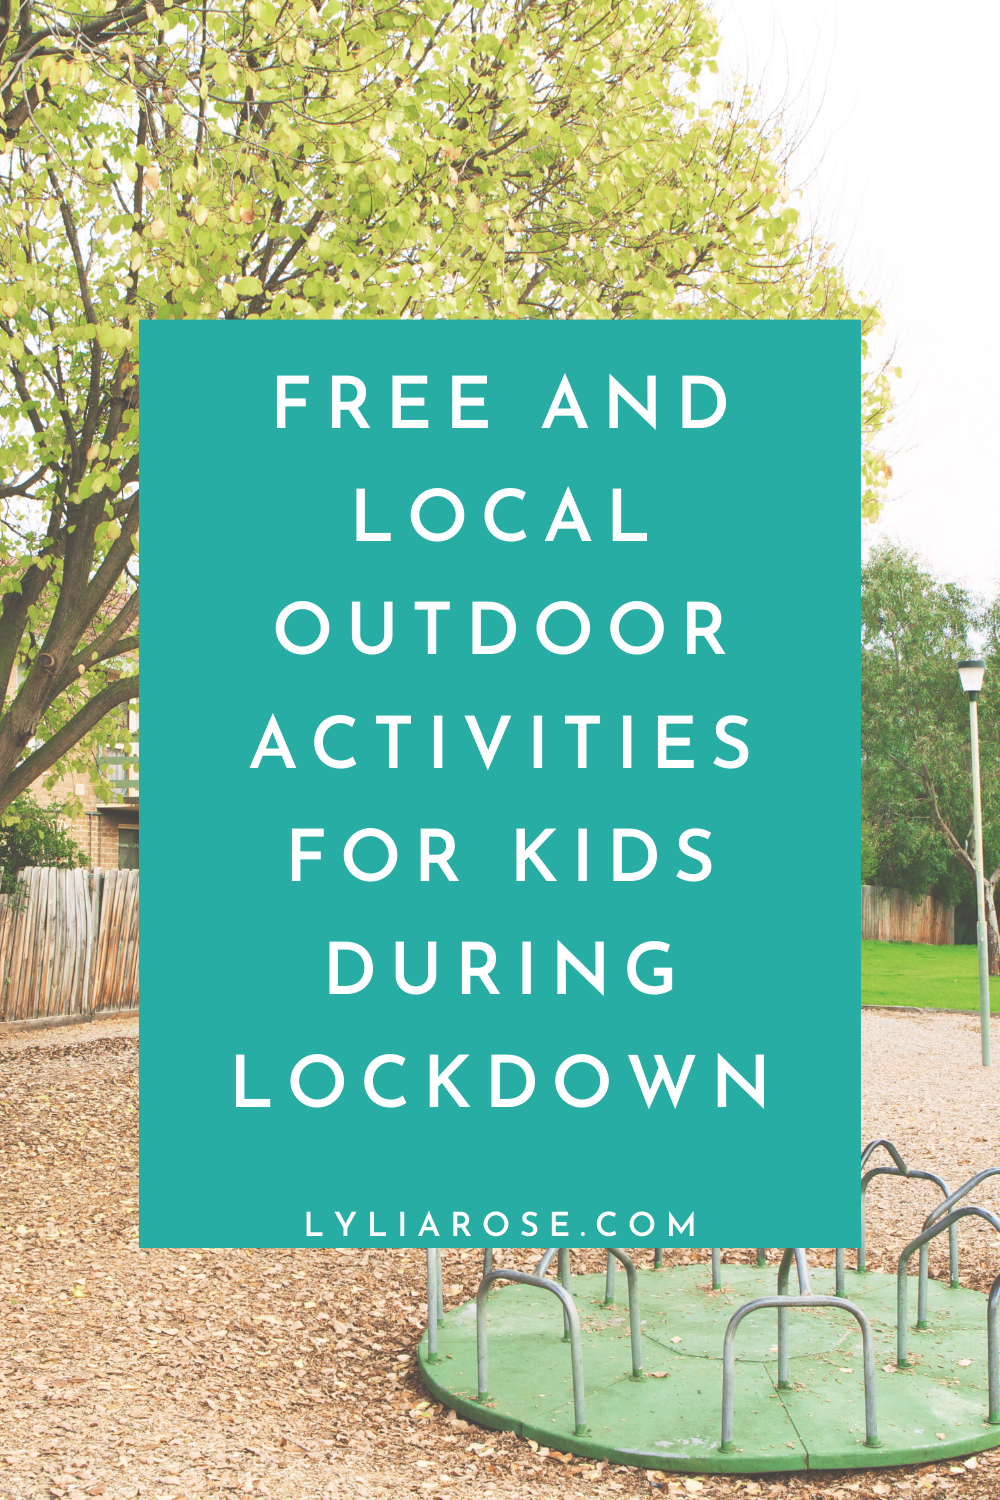 Free and local outdoor activities for kids during lockdown (1)